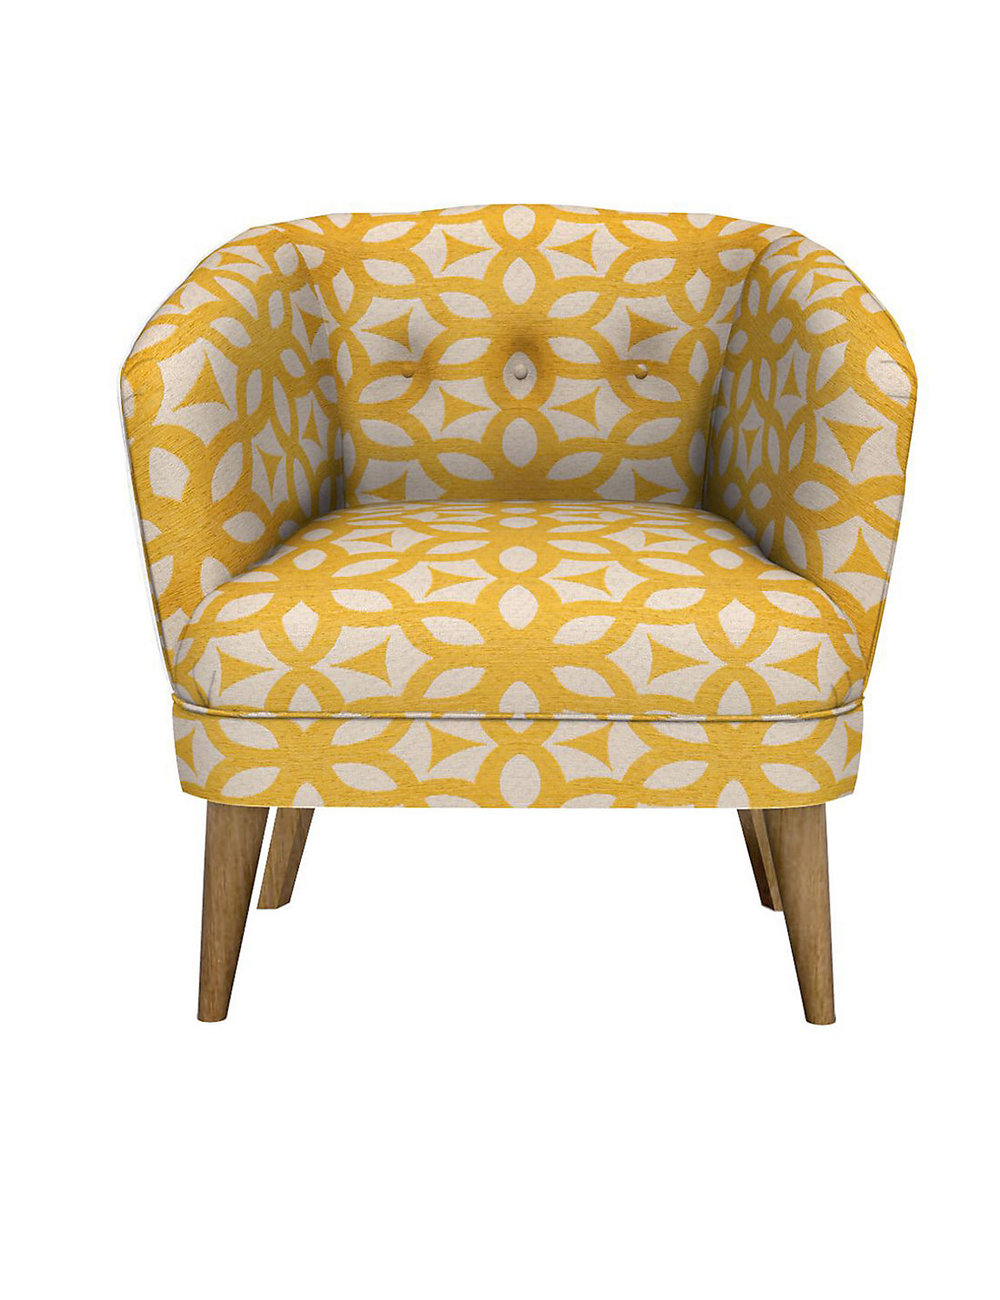 Benni Armchair Feiva Yellow